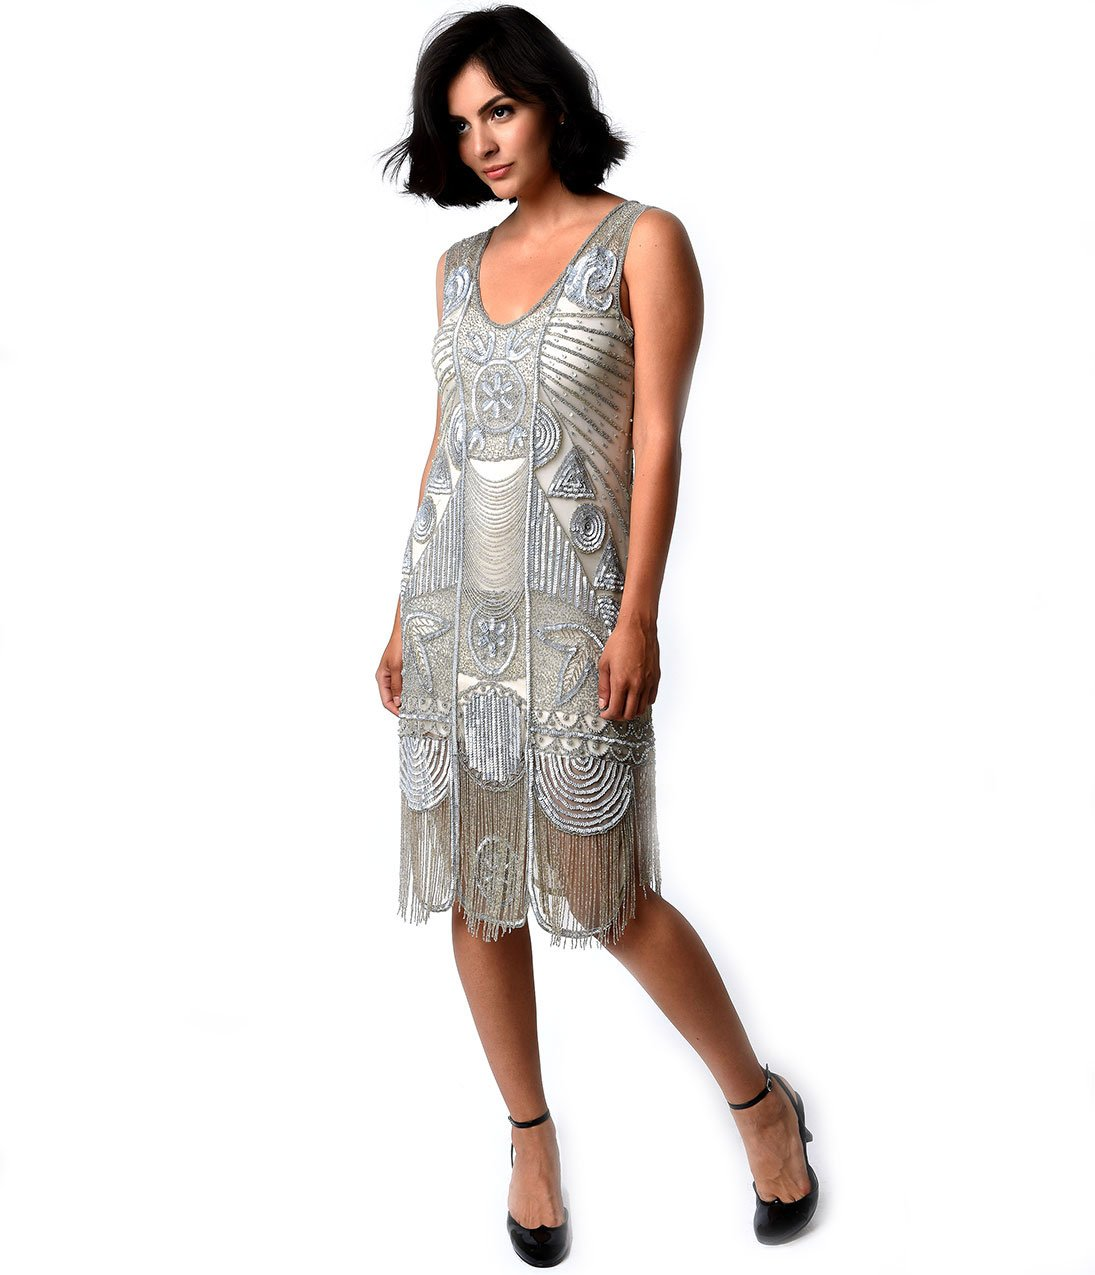 Unique Vintage 1920s Style Silver Beaded Fringe Bosley Flapper Dress by Unique Vintage